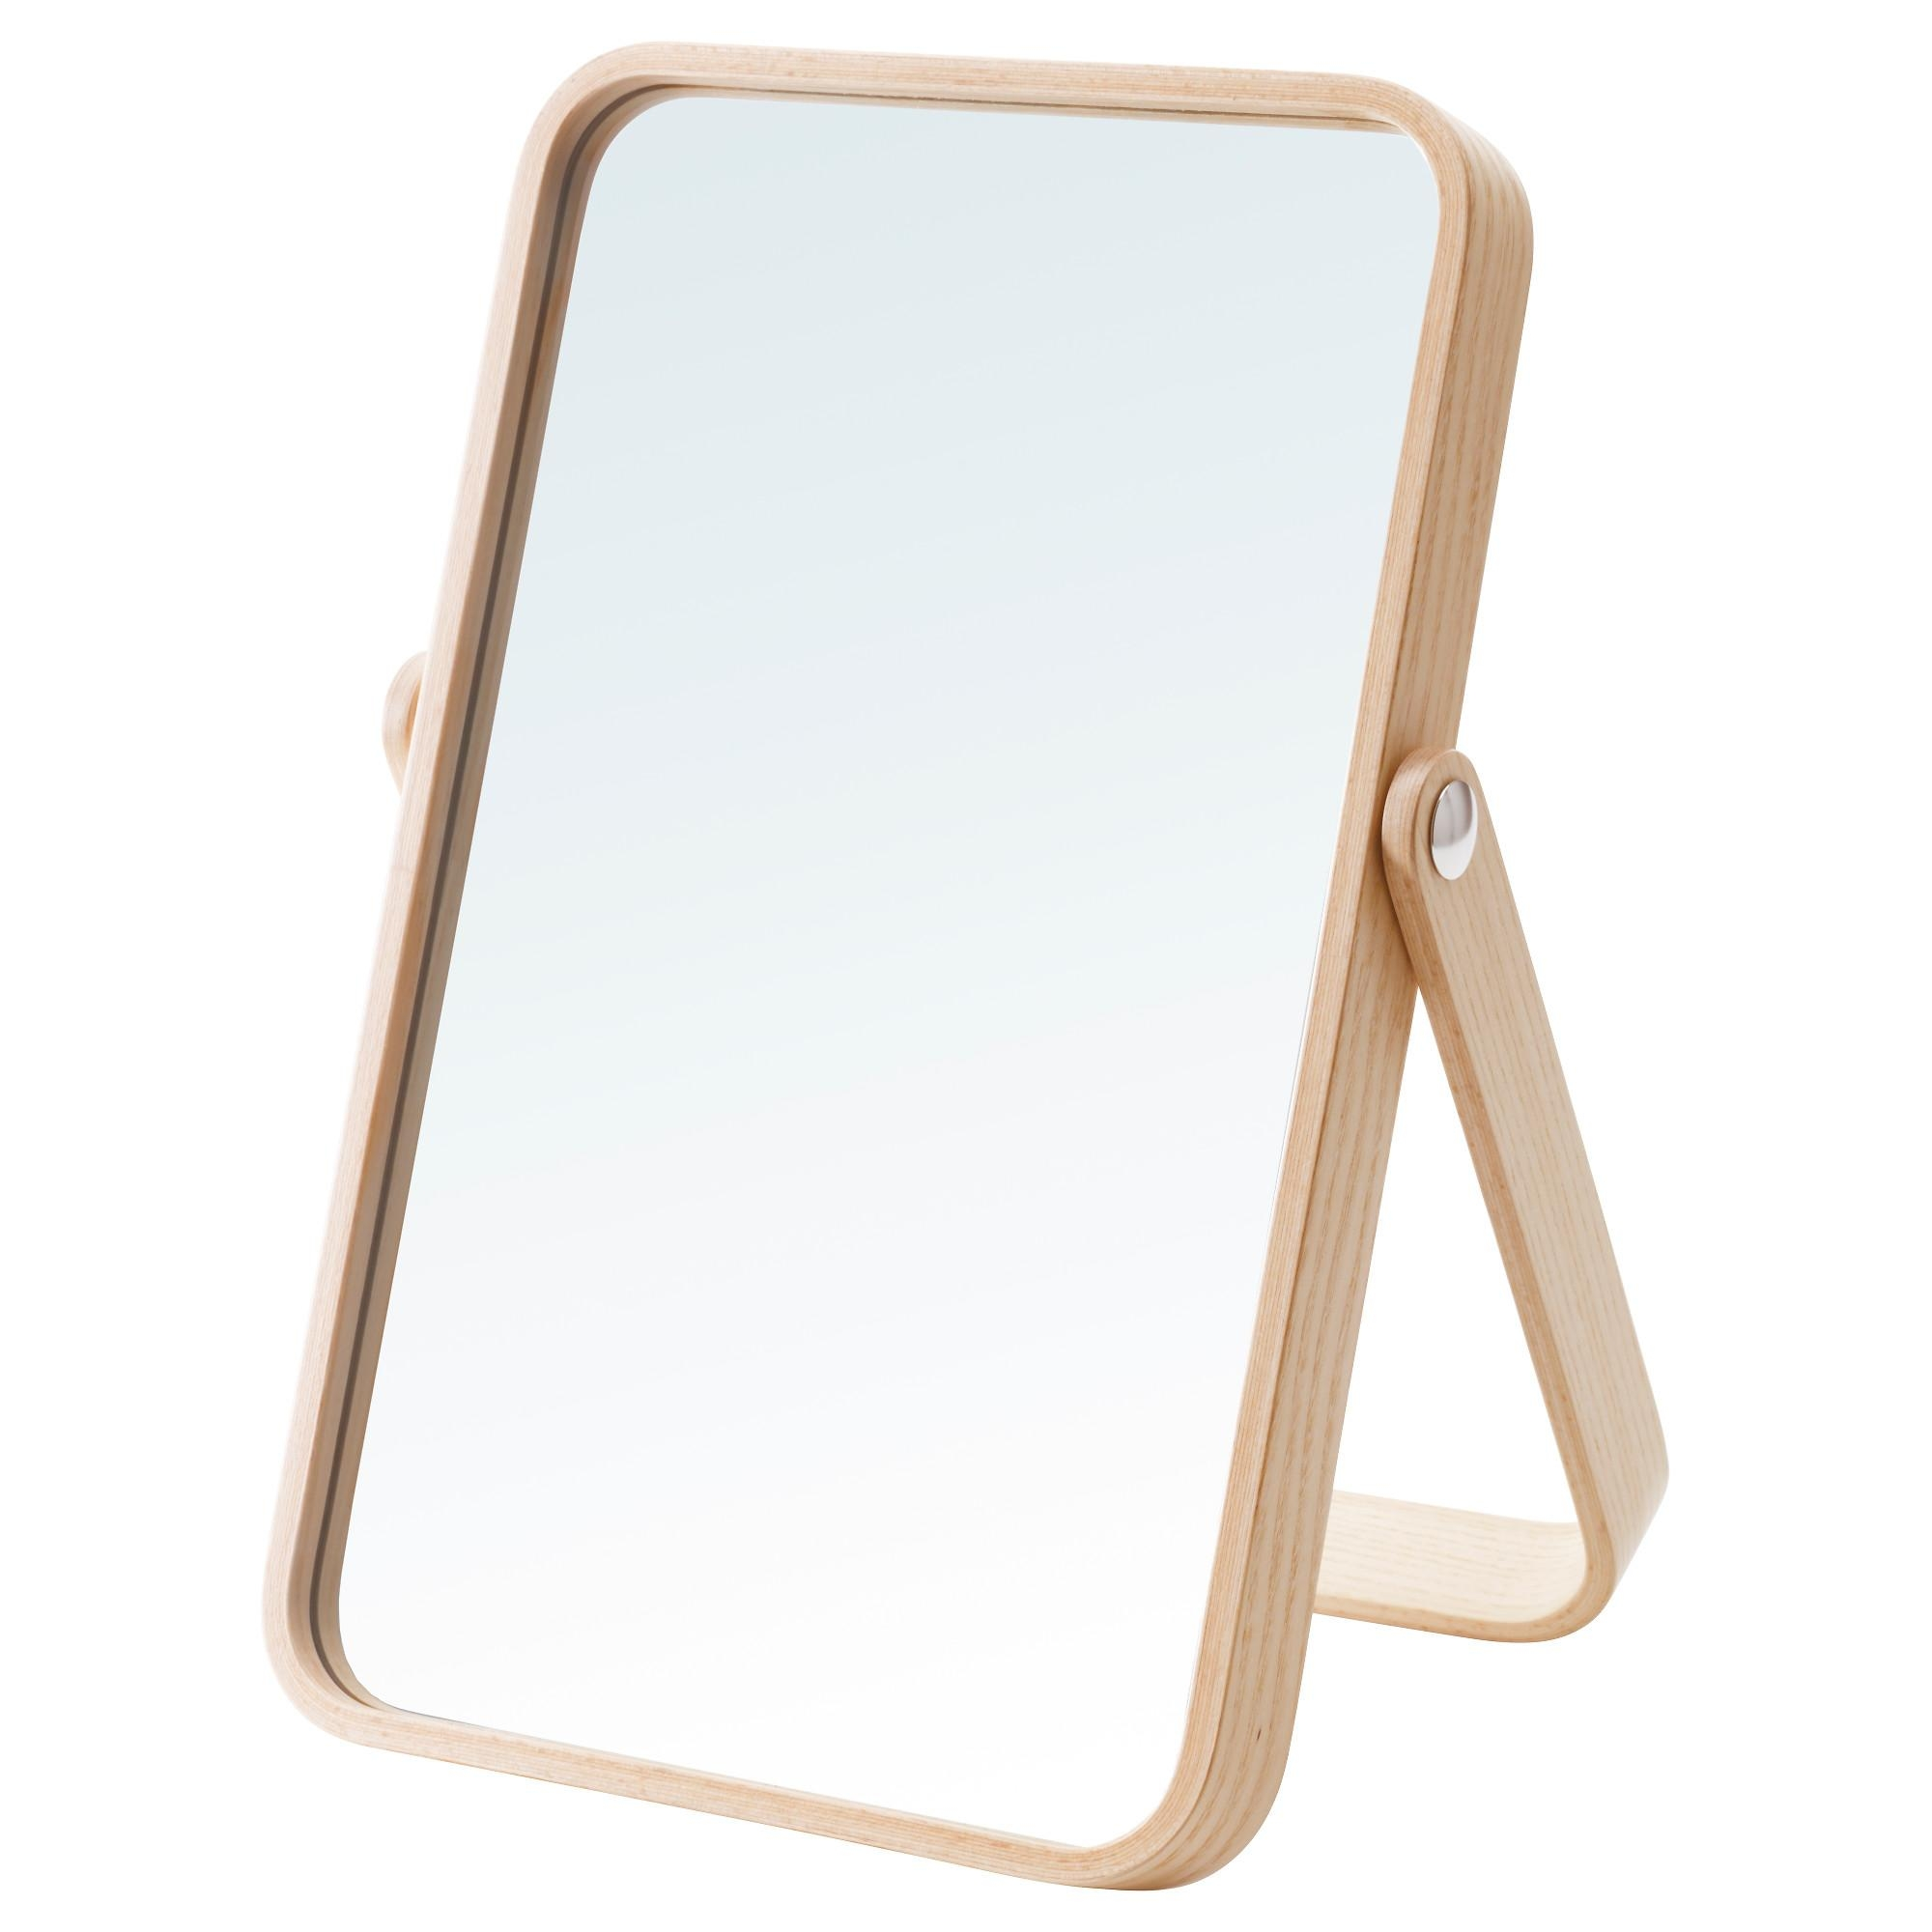 Ikornnes Table Mirror Ash 27X40 Cm – Ikea Intended For Small Free Standing Mirror (Image 9 of 20)